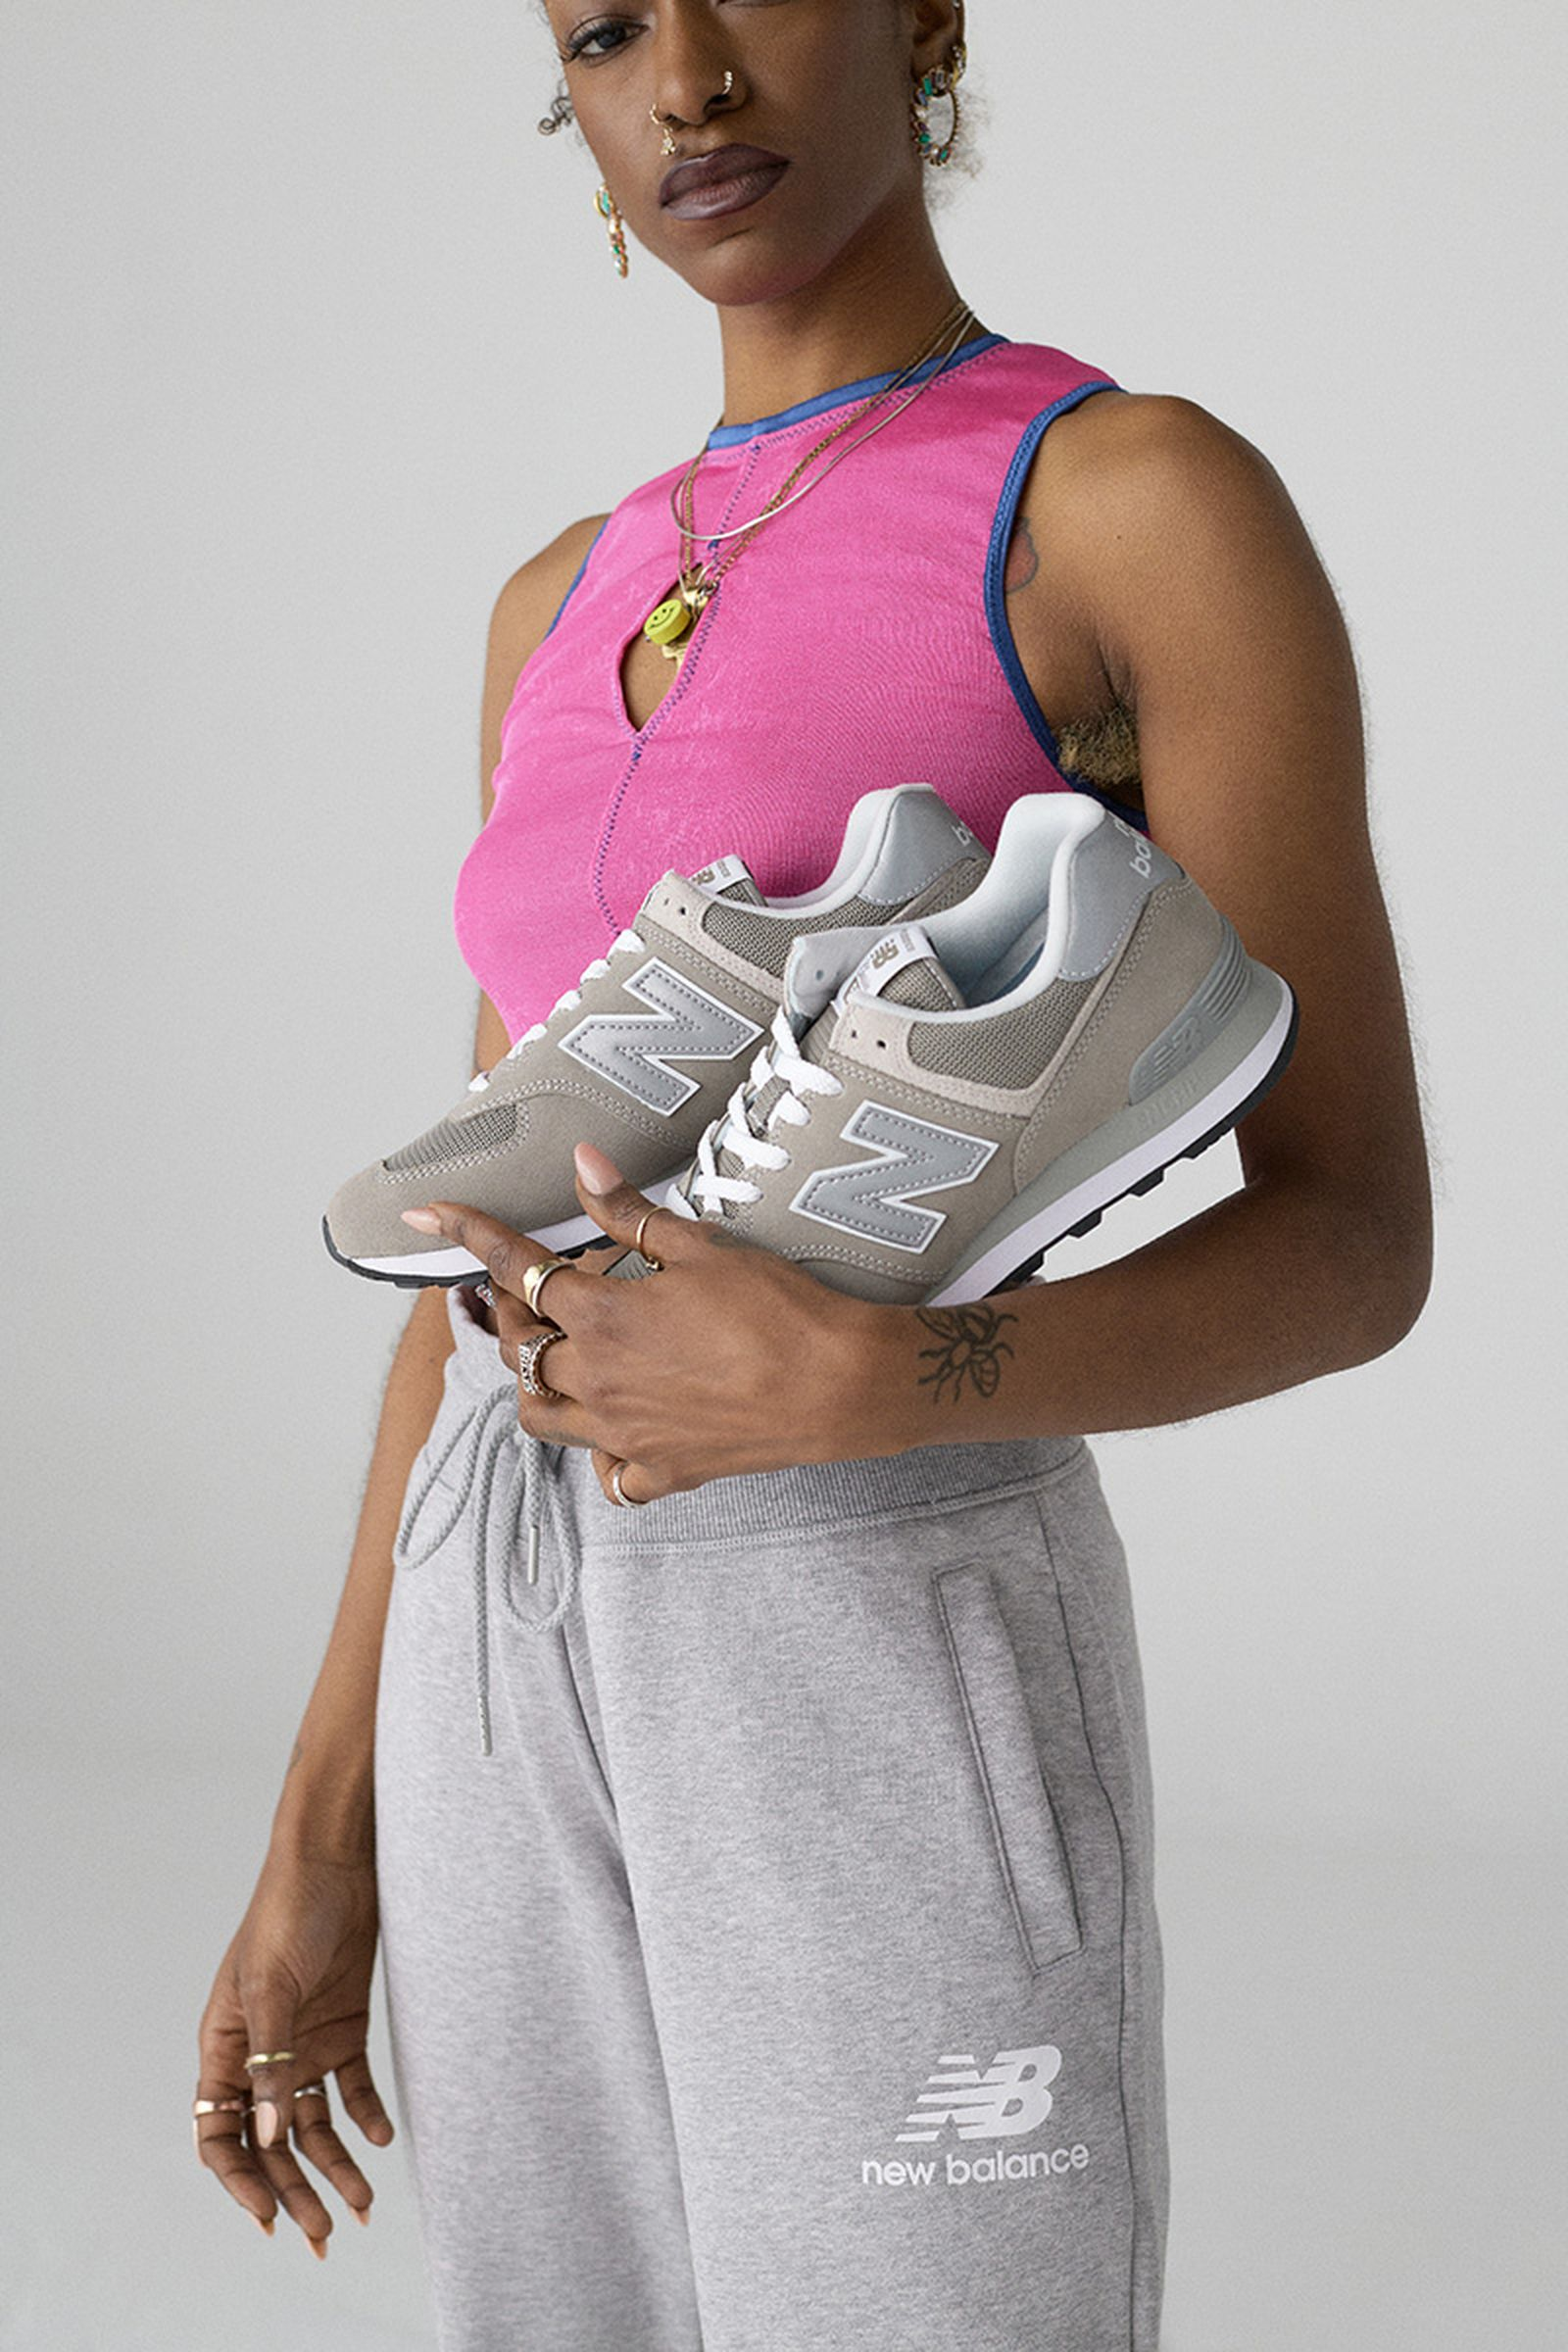 new-balance-grey-day-2021-collection-release-date-price-campaign-02